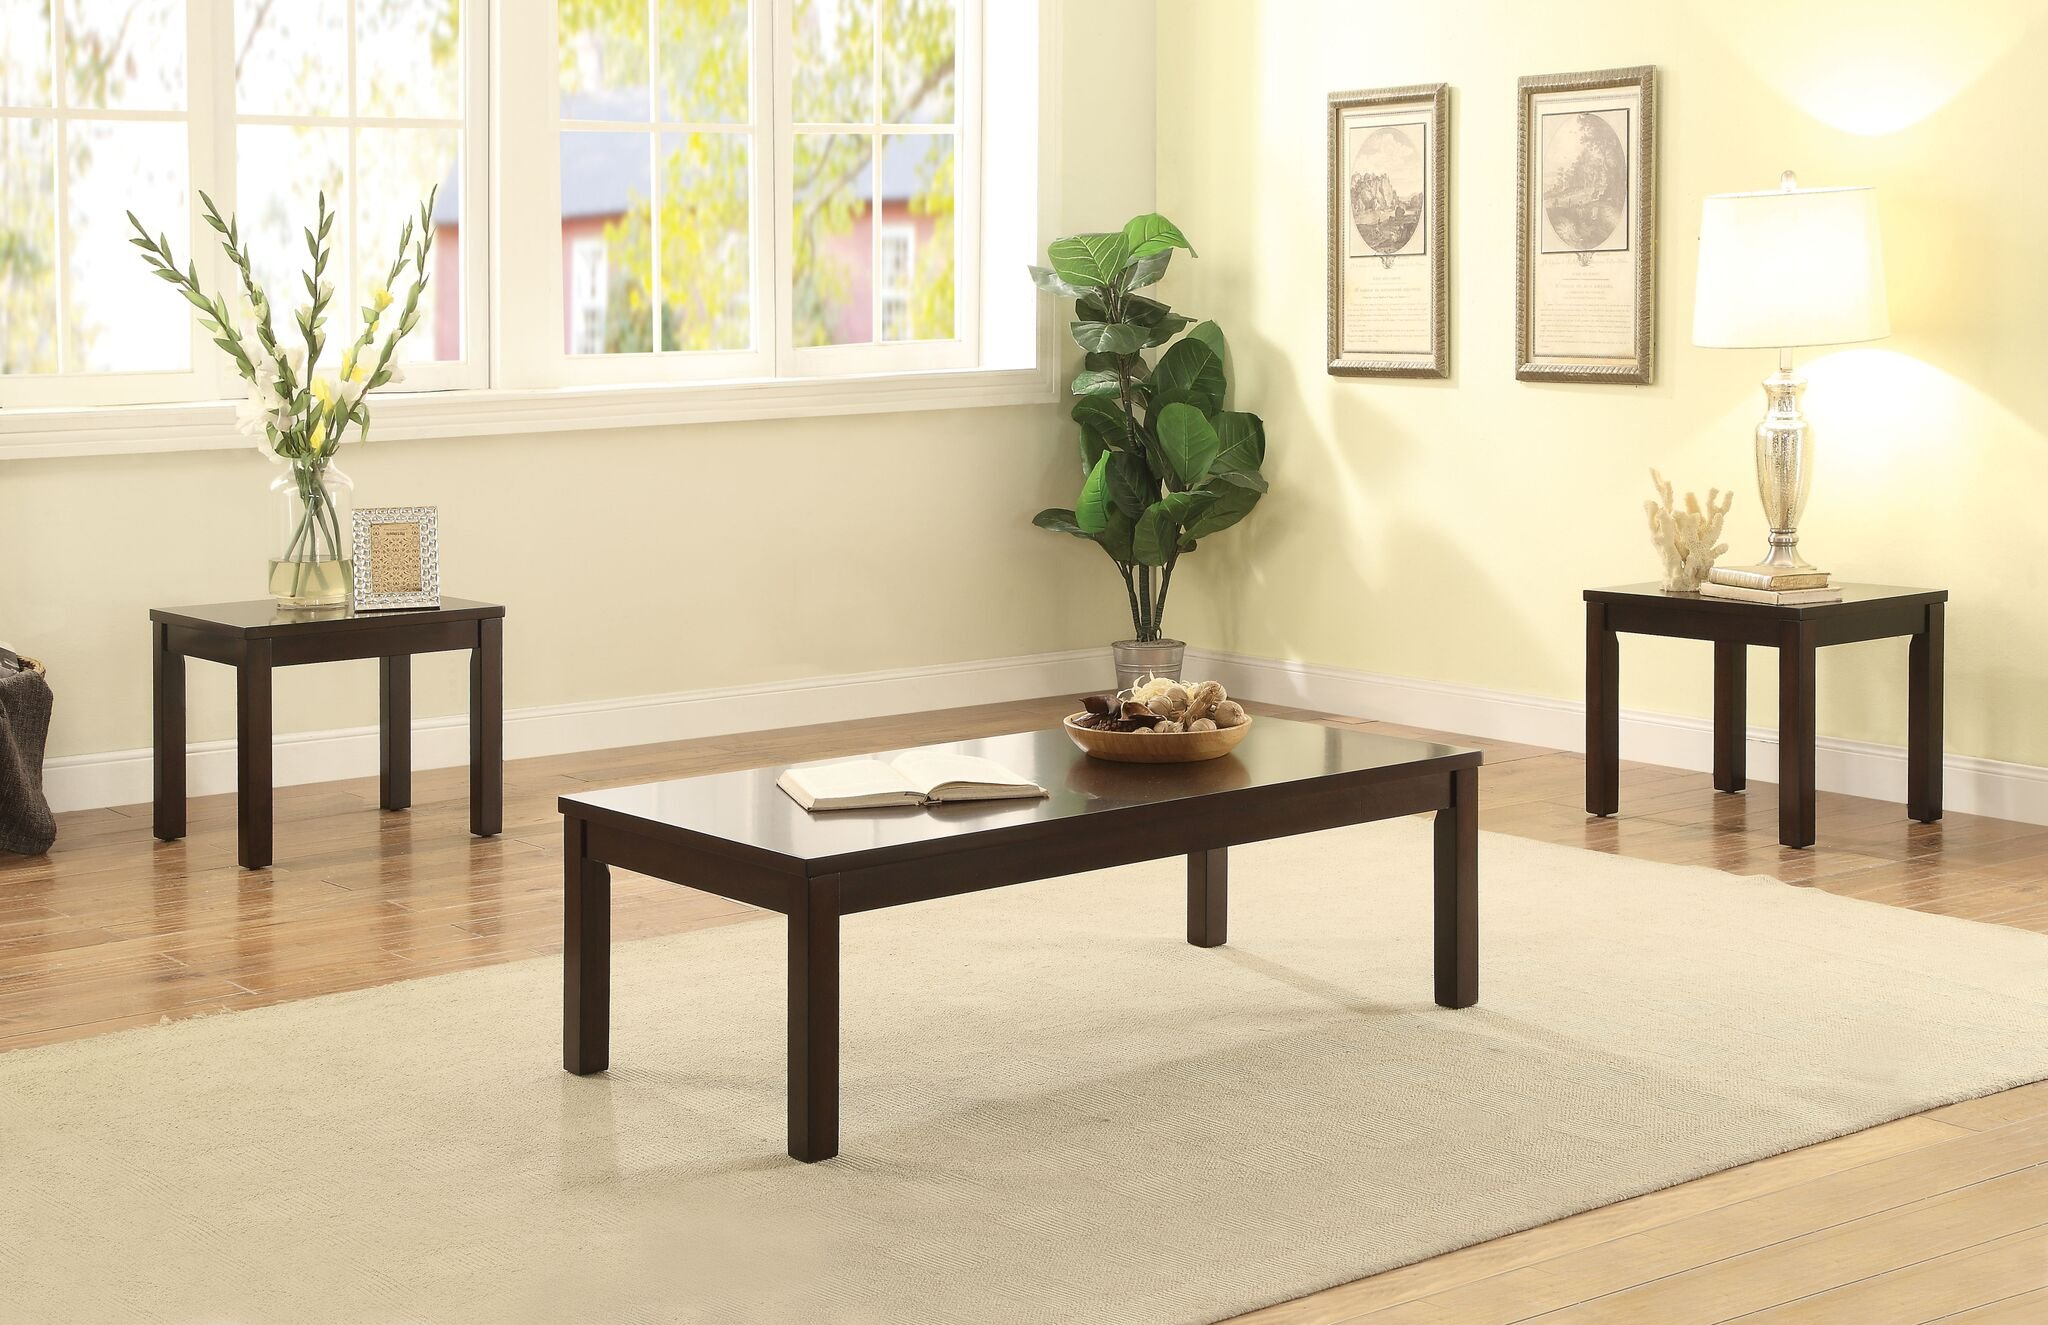 Major-Q Occasional Espresso Finish 3-Pc Wooden Coffee and End Table Set (9082928) by Major-Q